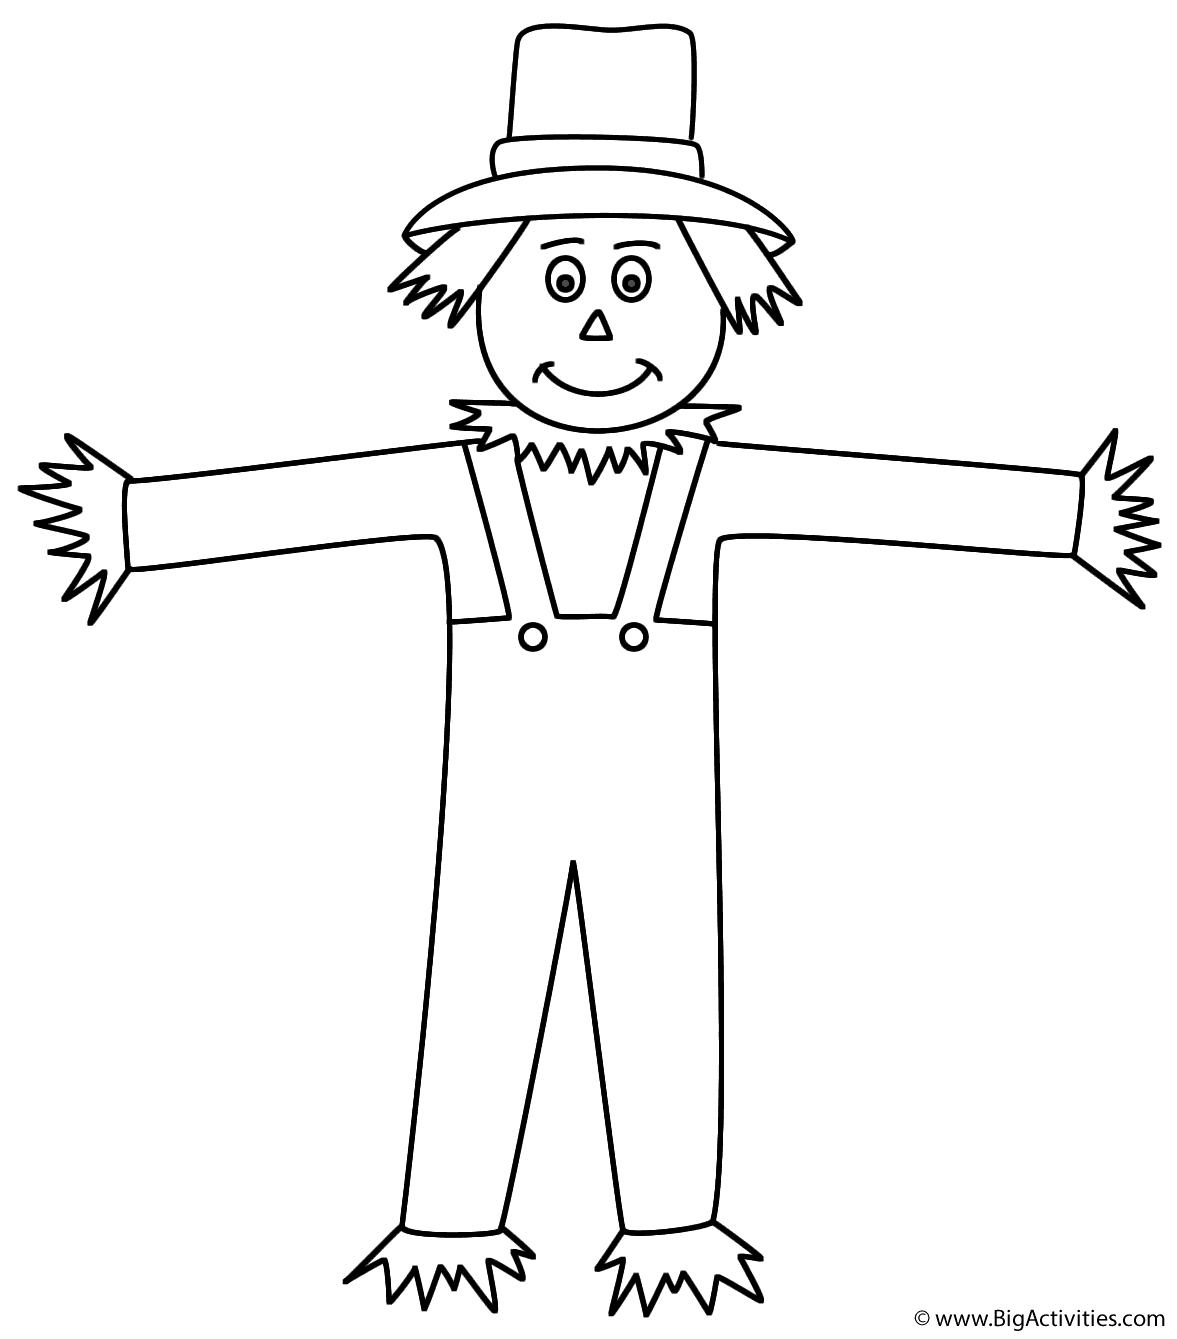 coloring pages of scarecrows - photo#2